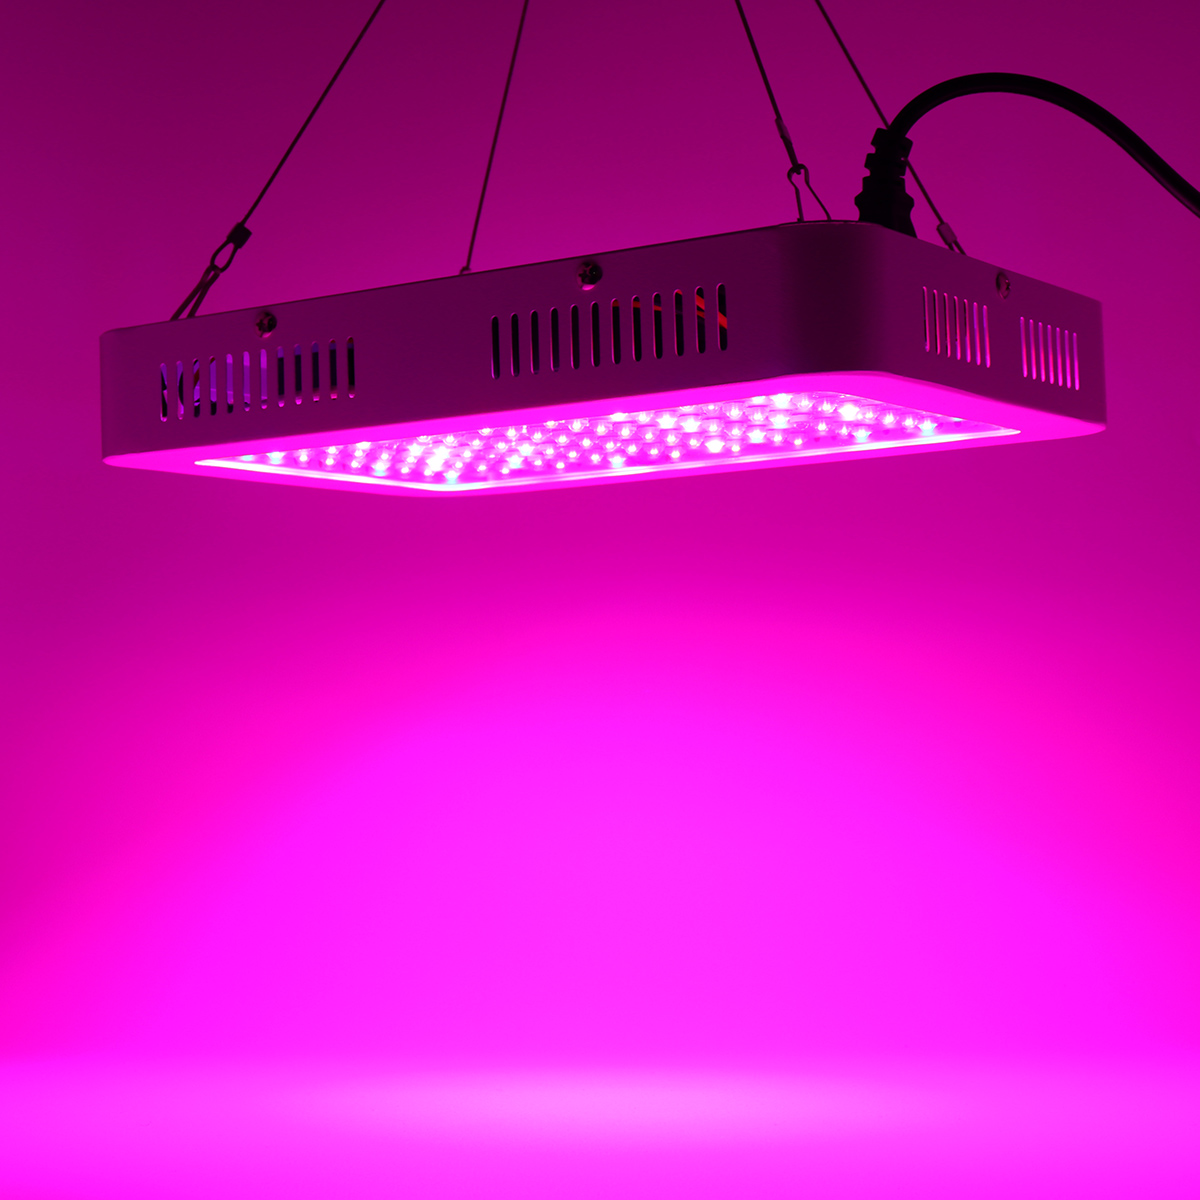 100pcs LED Plant Grow Light 1000W Full Spectrum Sunlike Plant Light Dual Chip with ON/Off Double Switch for Plants / Seedling / Succulents / Growing / Blooming